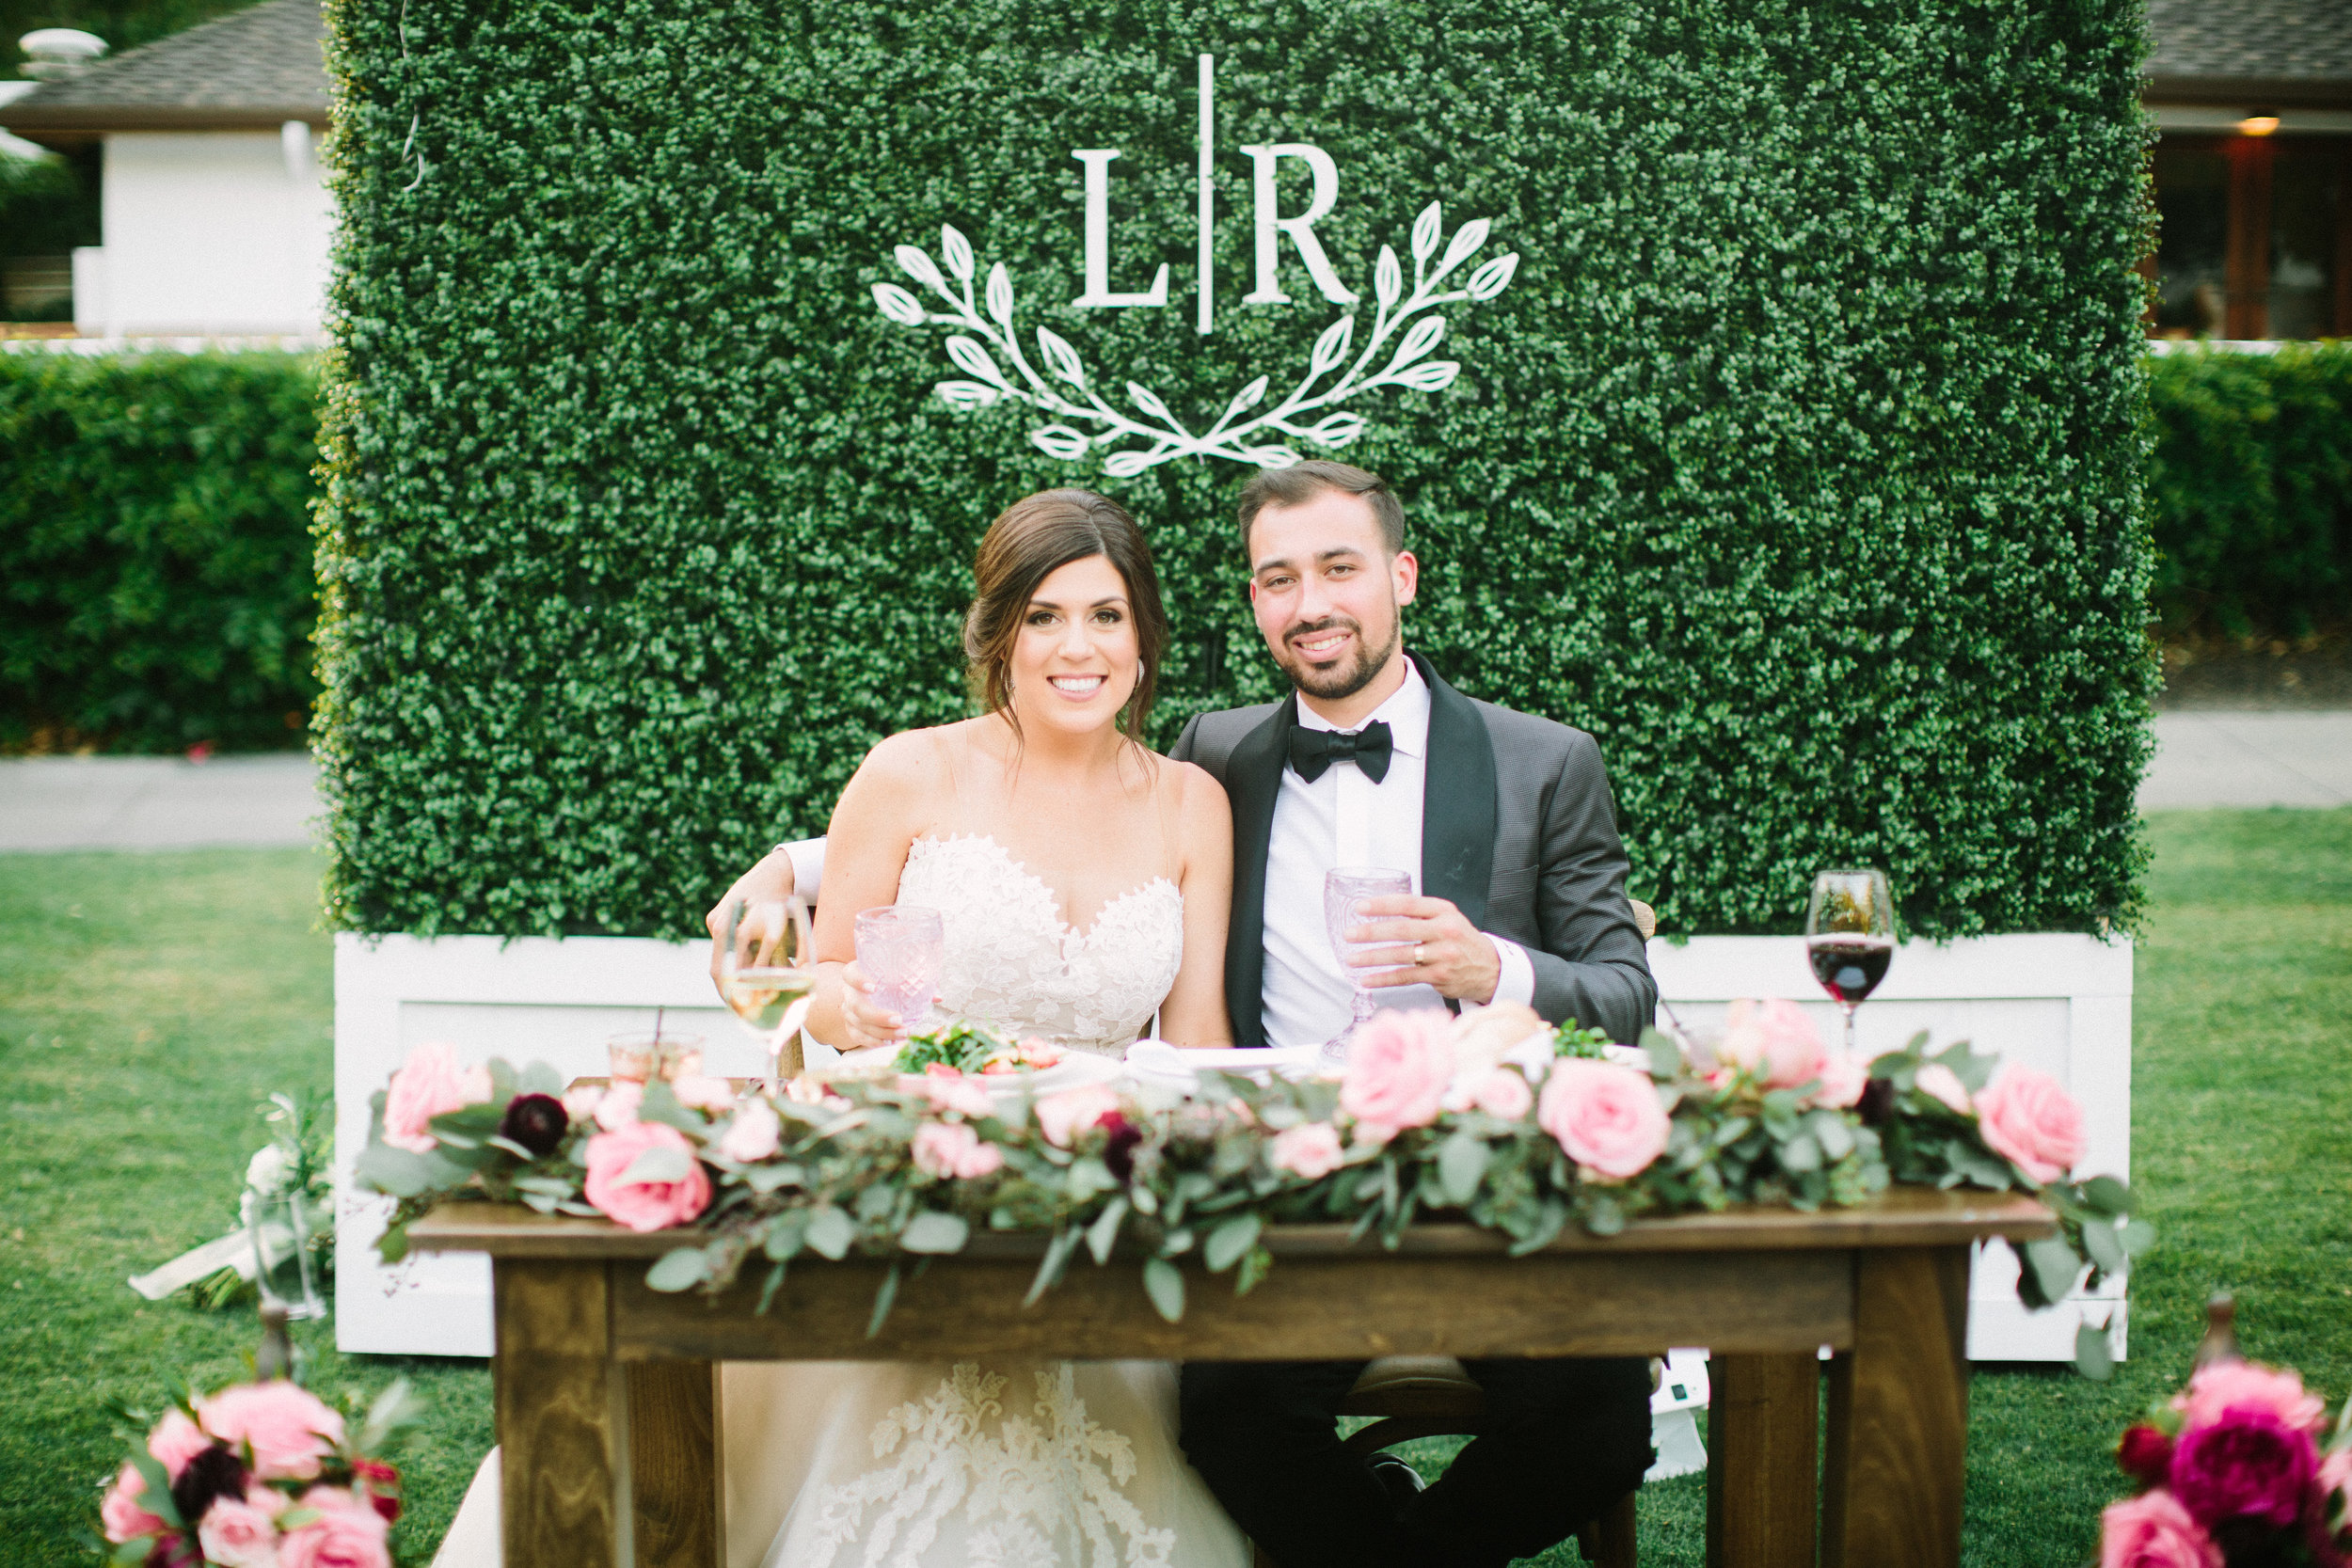 This-Love-of-Yours-Lauren-and-Ryan-Wedding-514.jpg